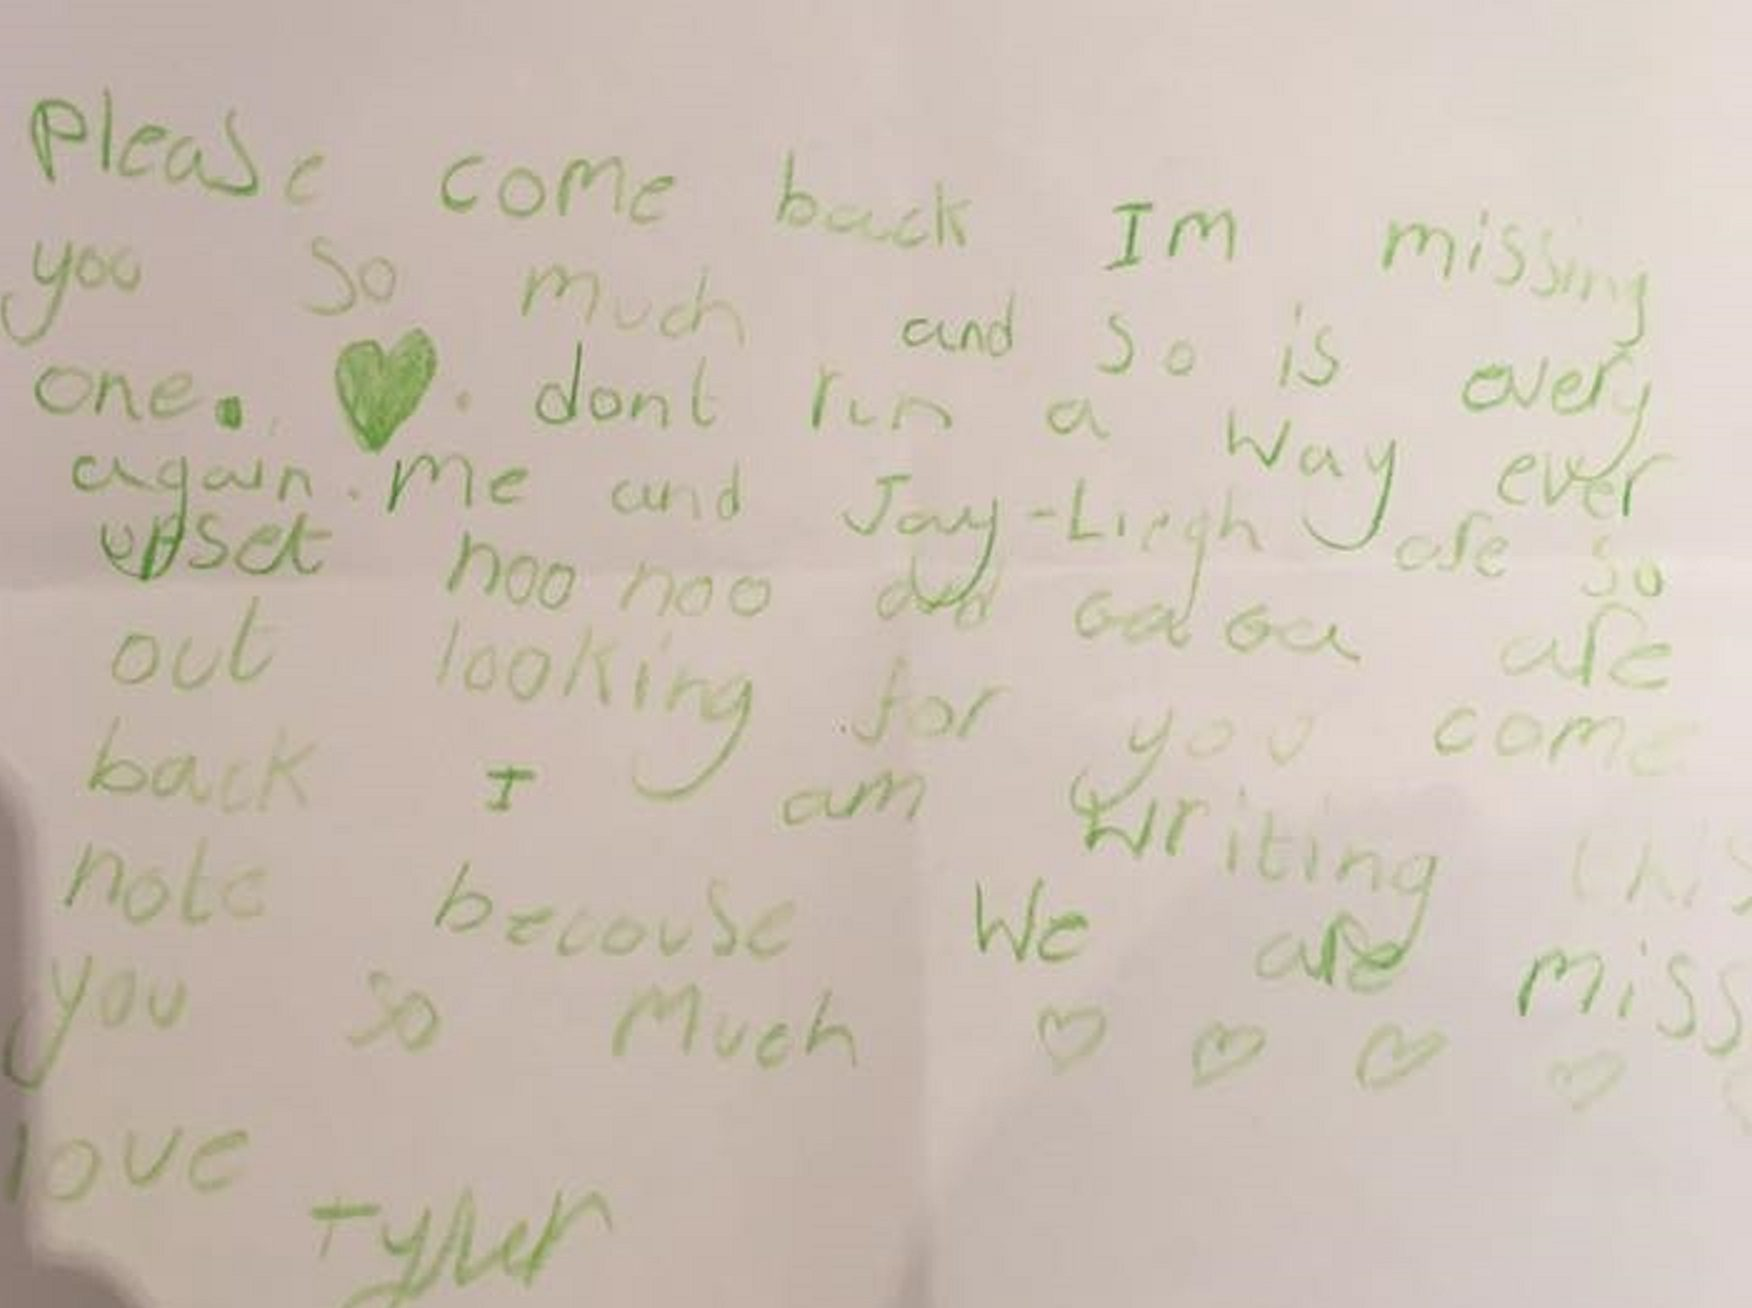 The letter from Corrie's niece.